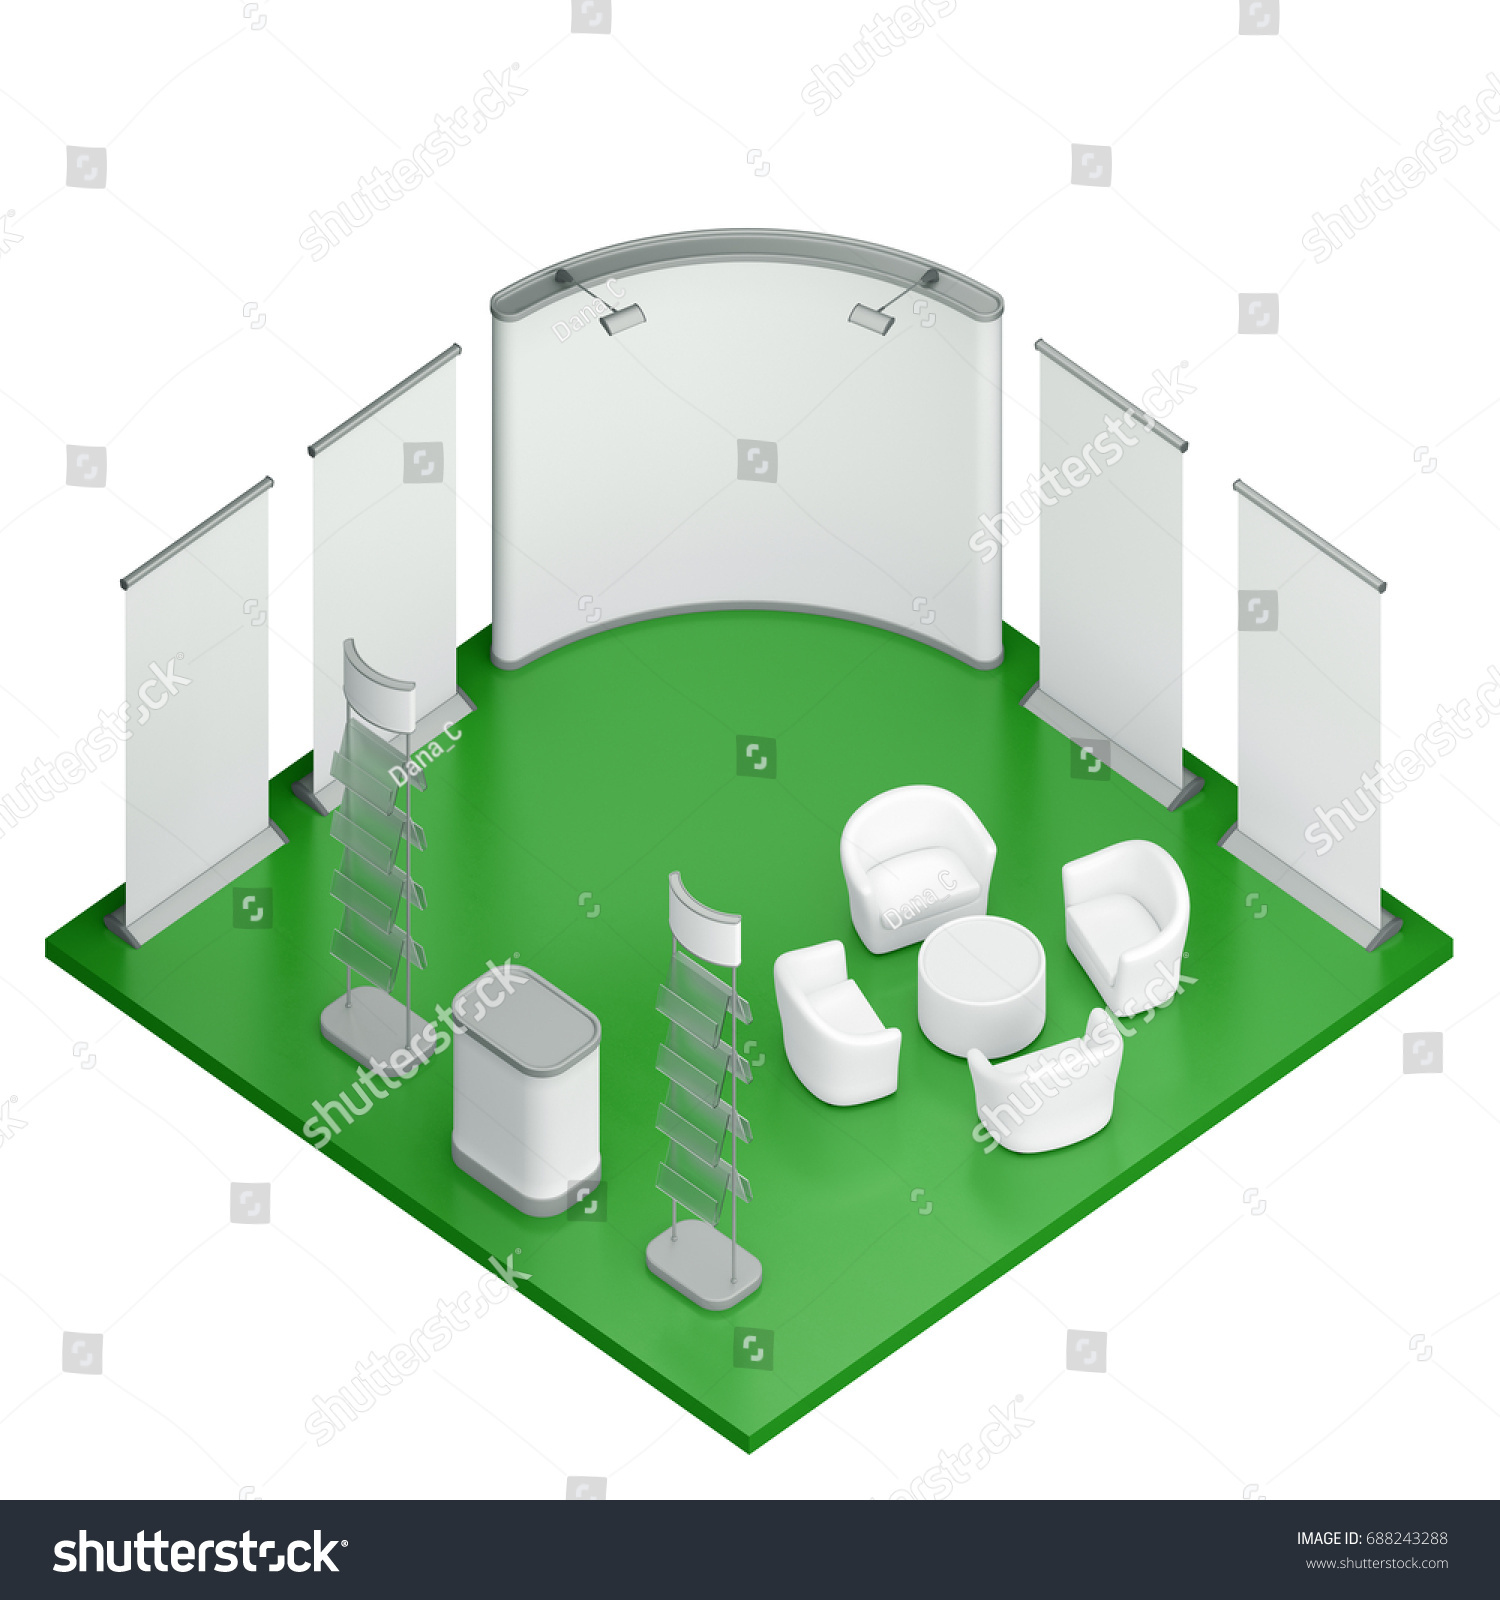 Exhibition Booth Floor Plan : Isometric exhibition booth stand d illustration stock